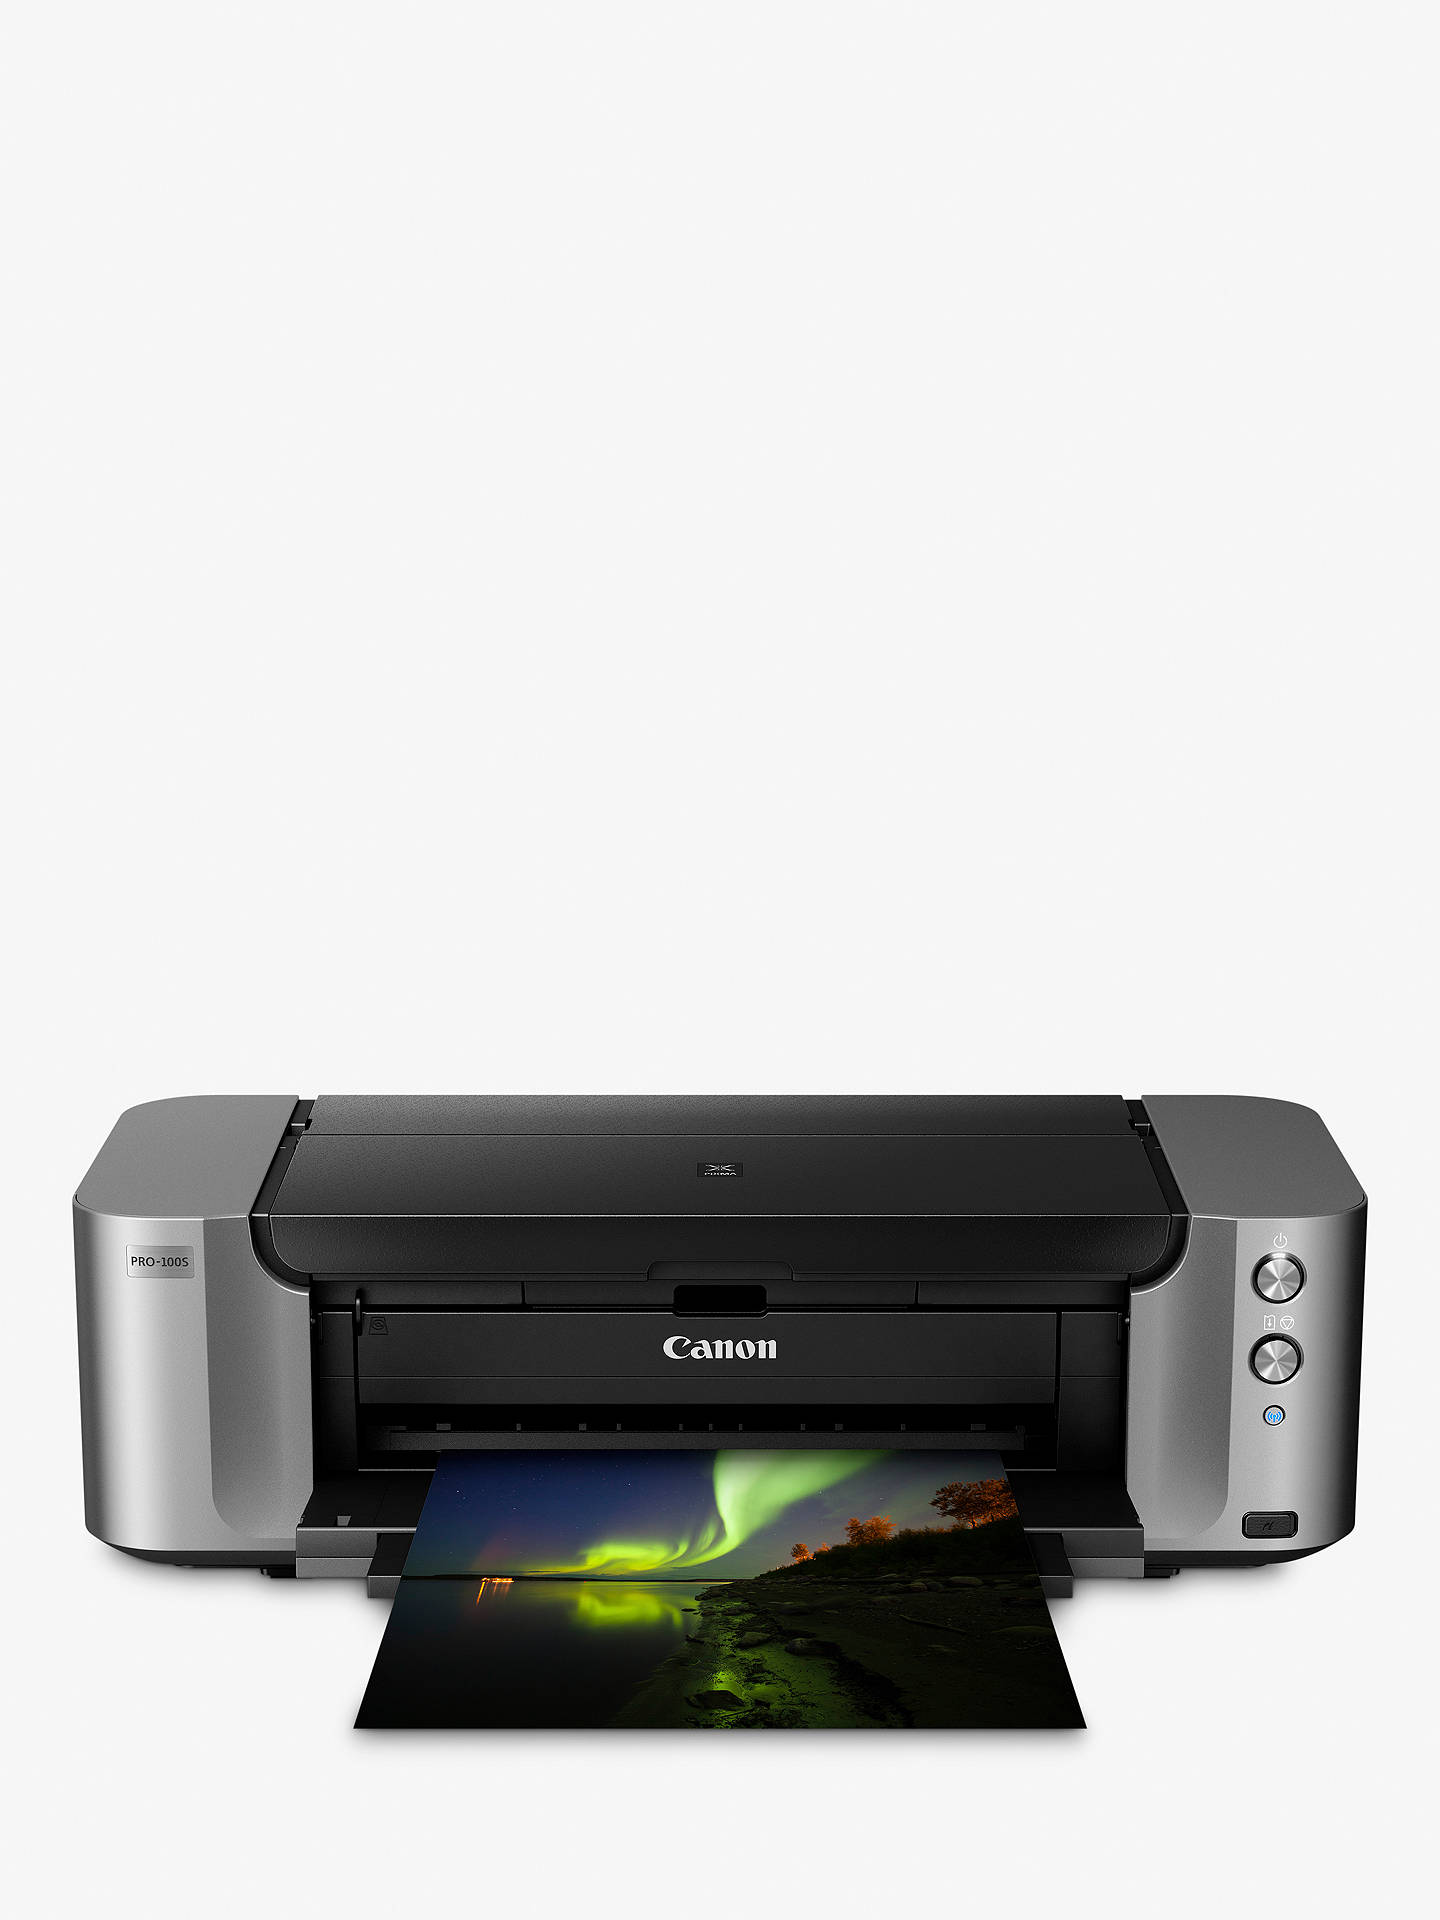 No Ink or Printhead Canon Pixma Pro-100 Inkjet Photo Printer Body Only NEW